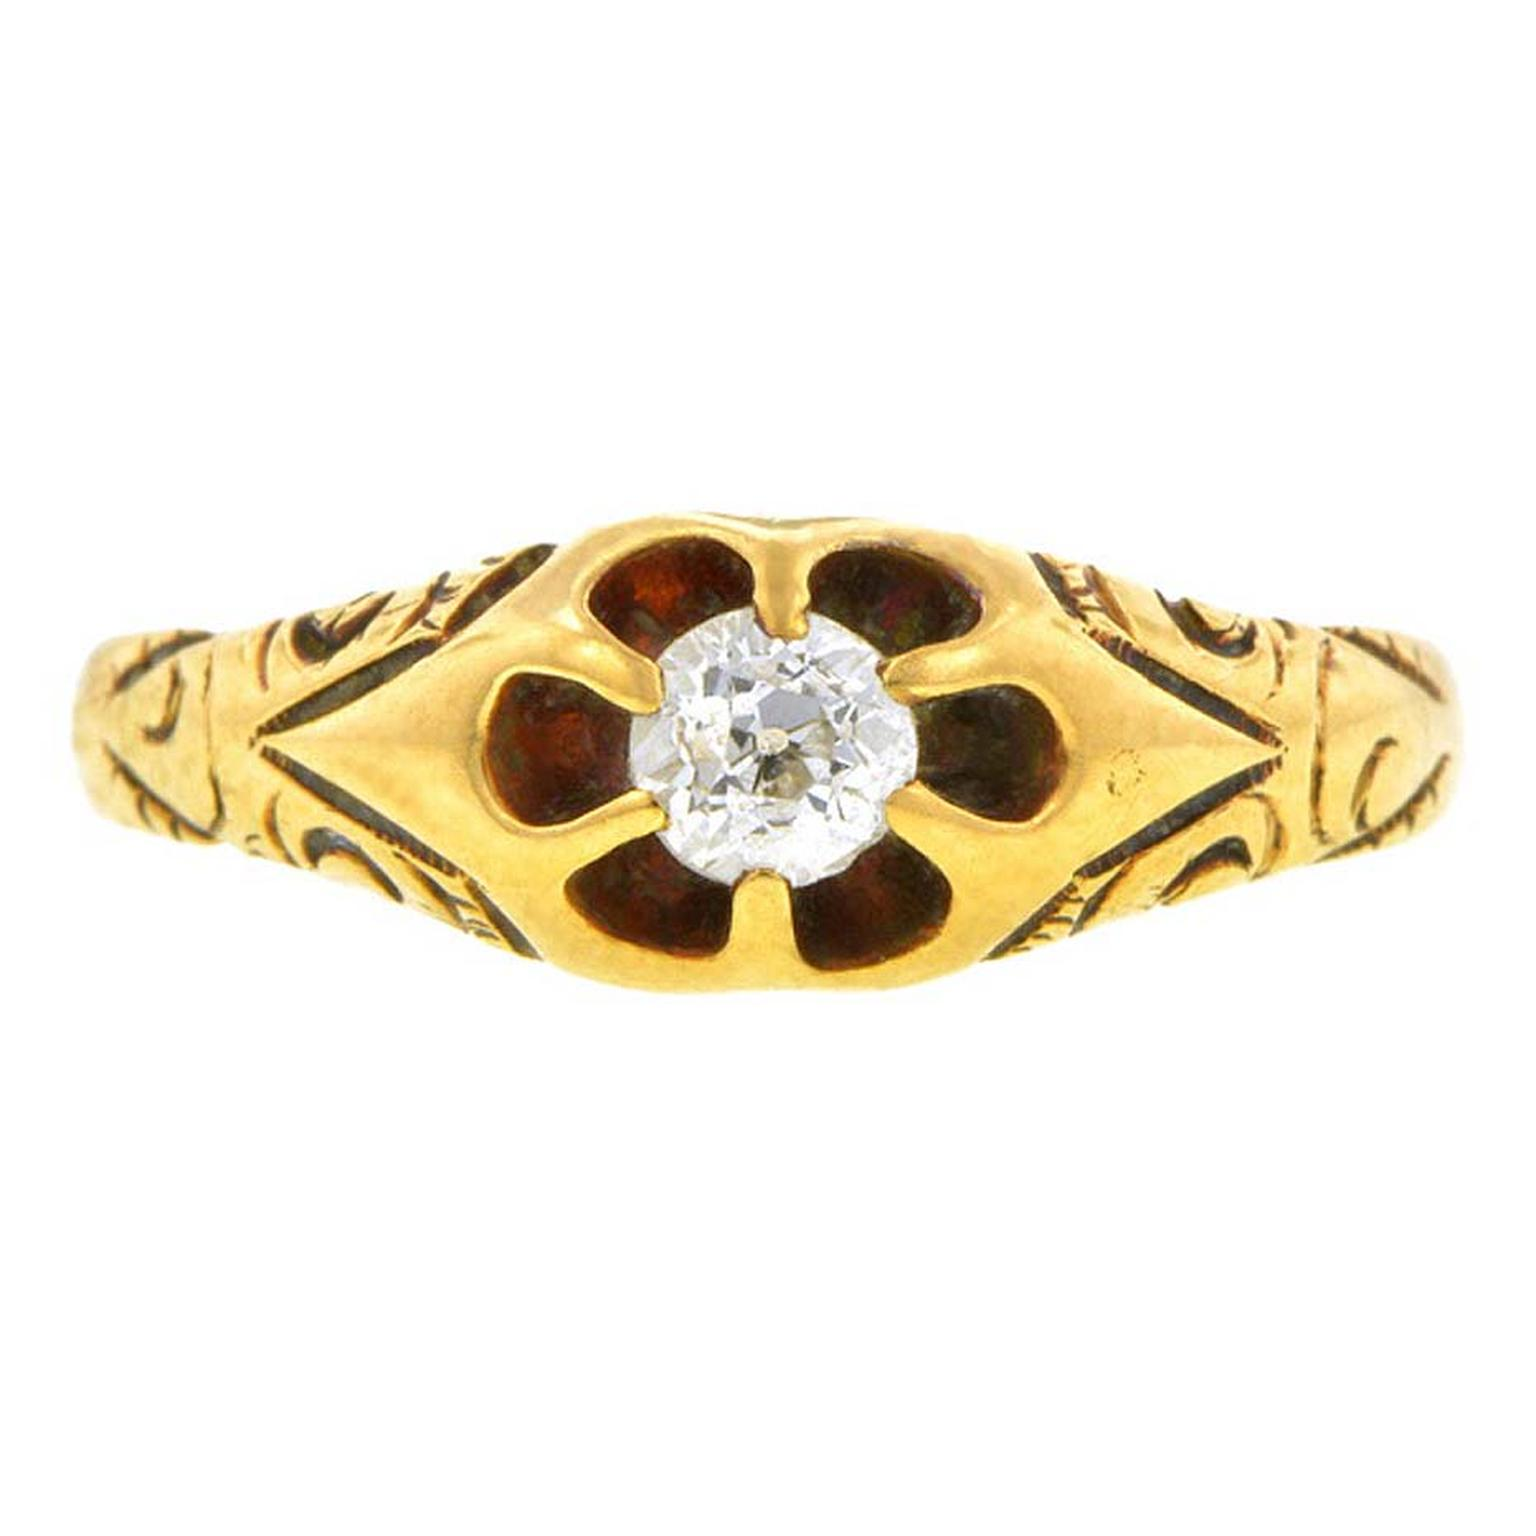 Old European-cut gold and diamond late Victorian engagement ring, which dates from around 1900. Available from Doyle & Doyle in New York.